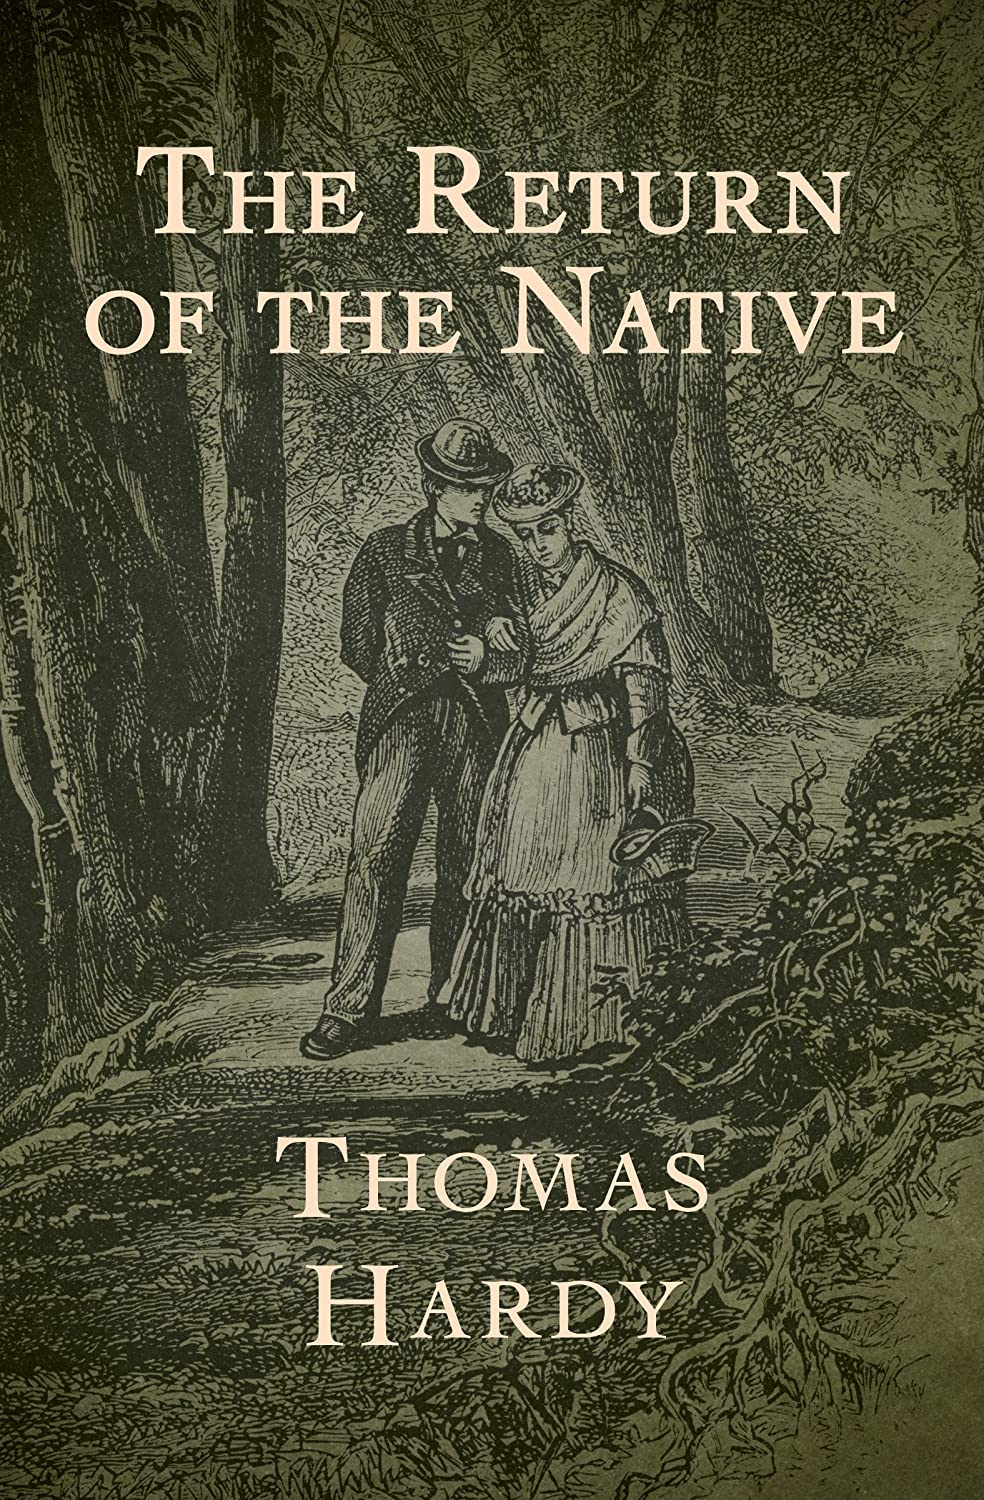 The Return of the Native (English Edition) eBook: Thomas Hardy ...